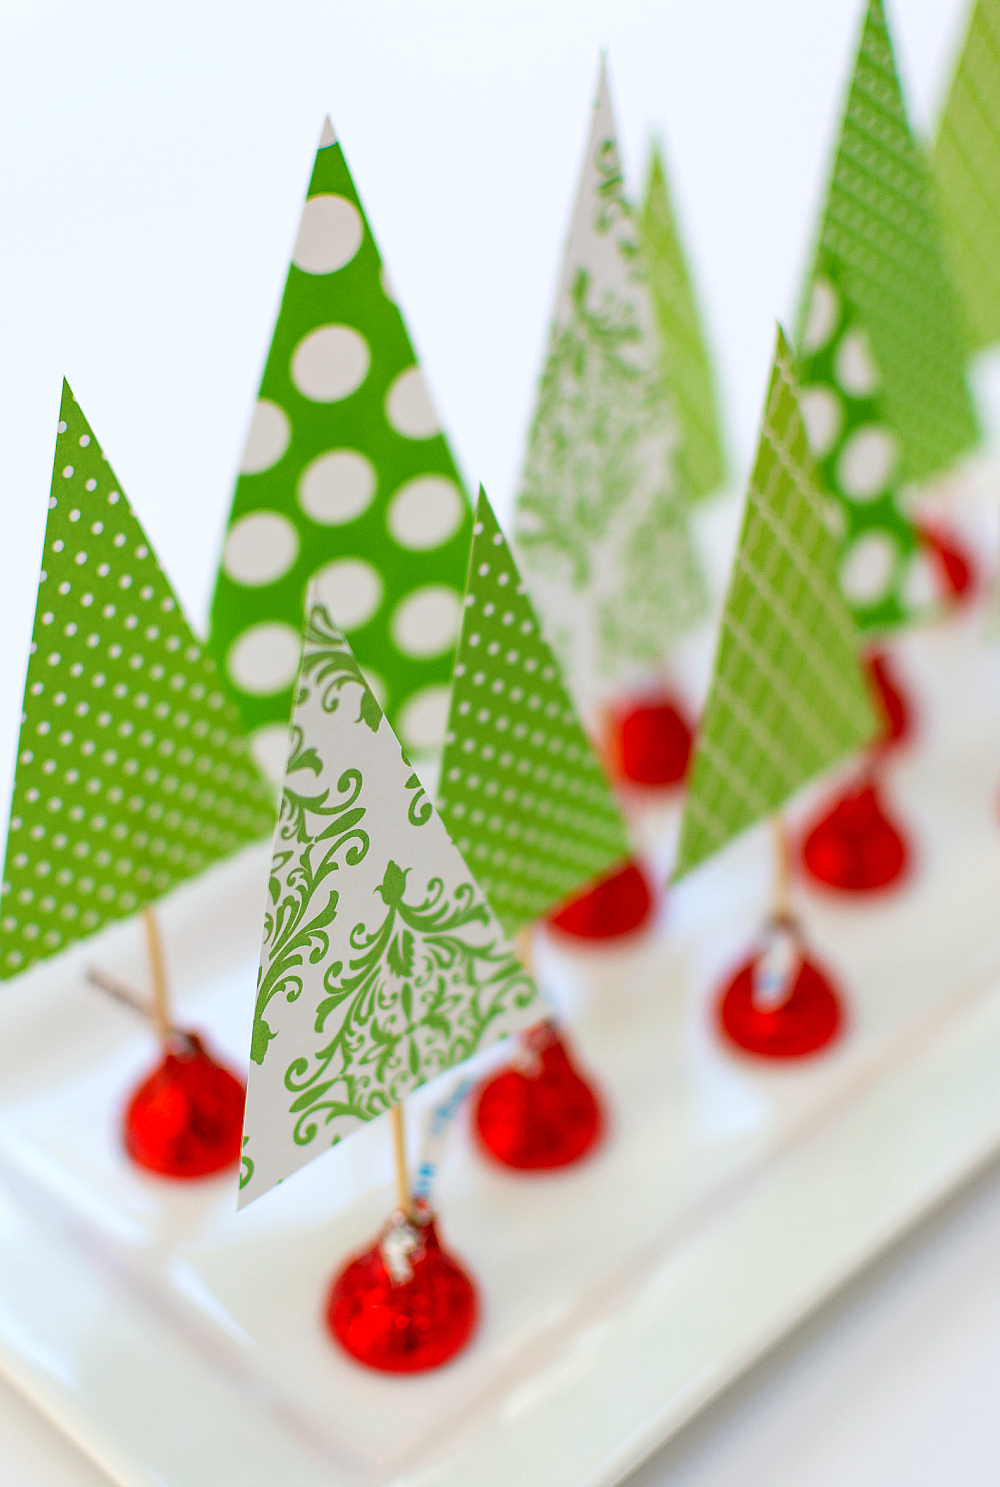 Christmas Craft for Kids Using Hershey Kisses